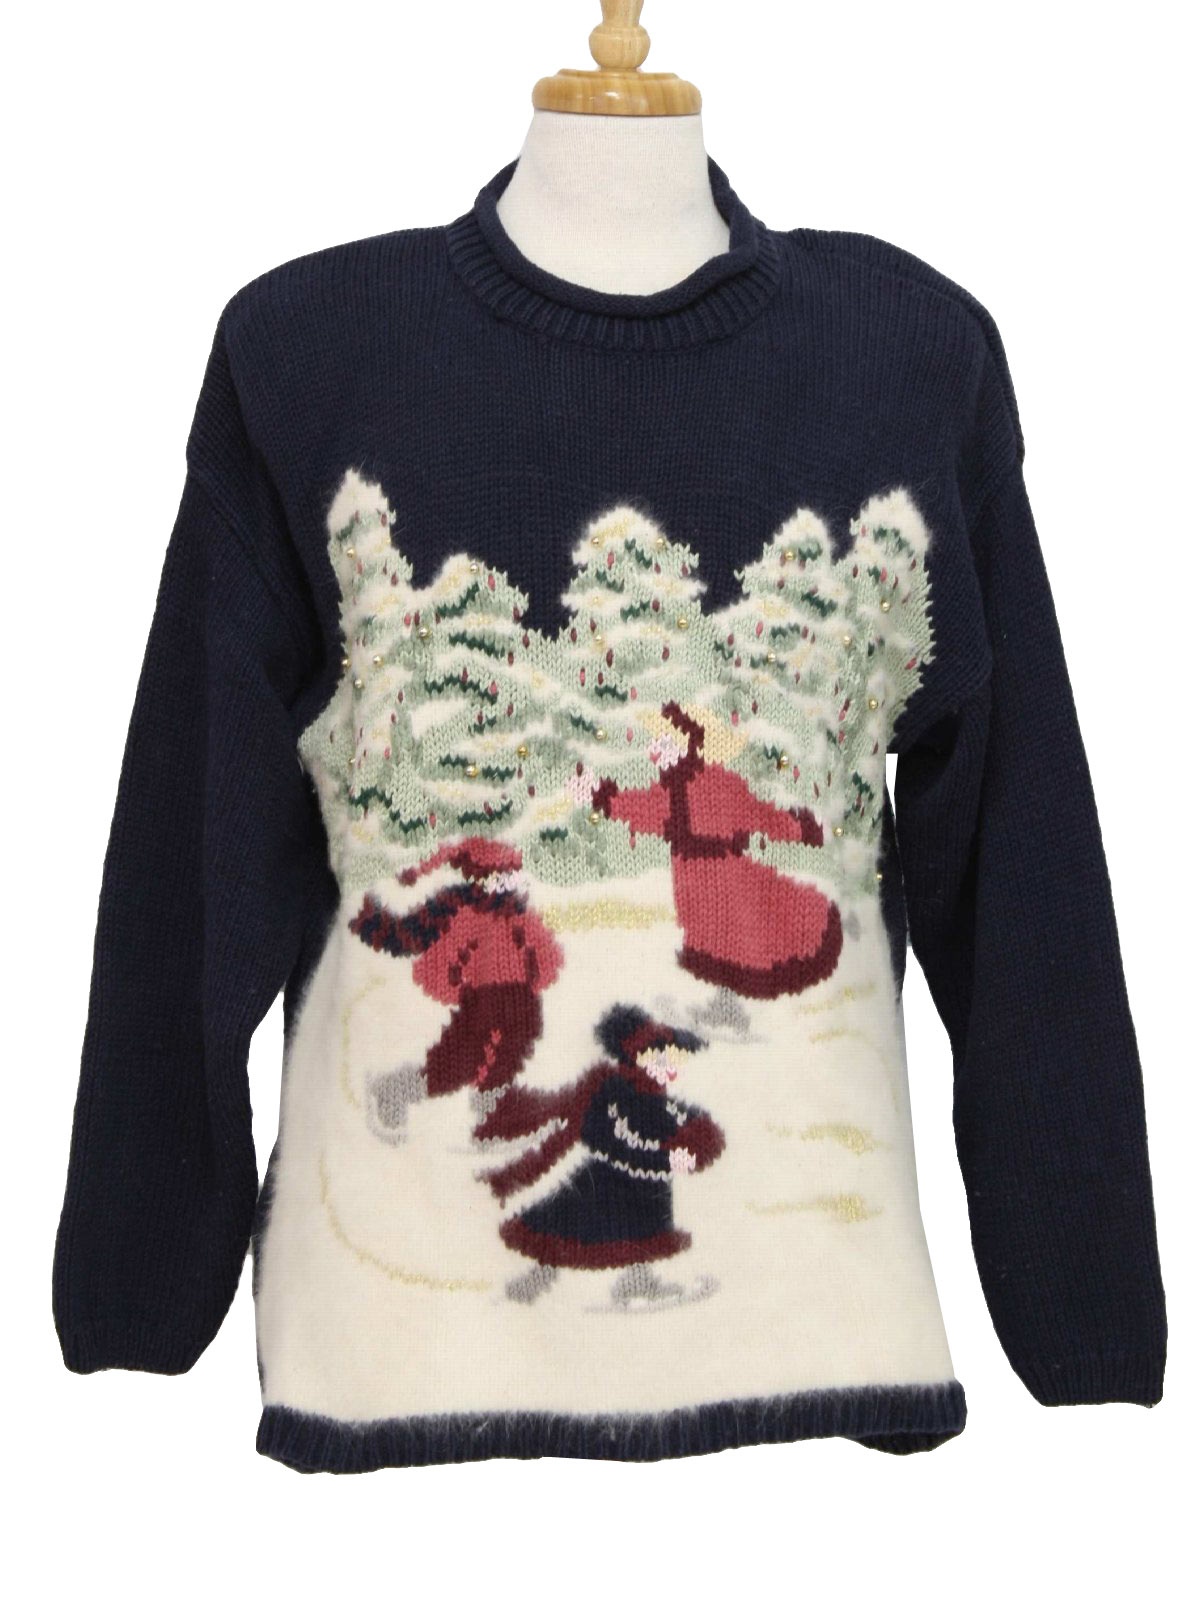 Ugly christmas sweater old navy : Active Discount